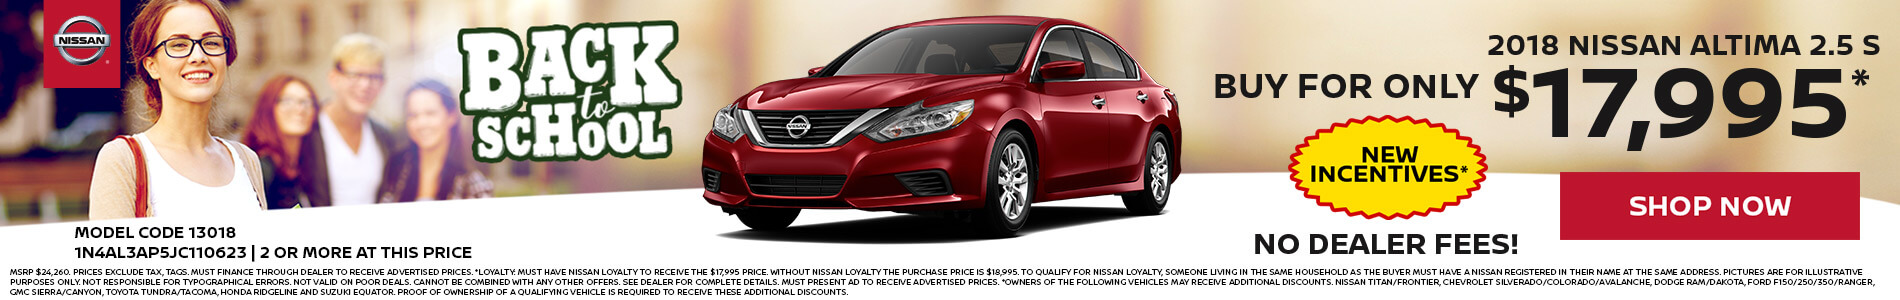 Nissan Altima $18,995 Purchas